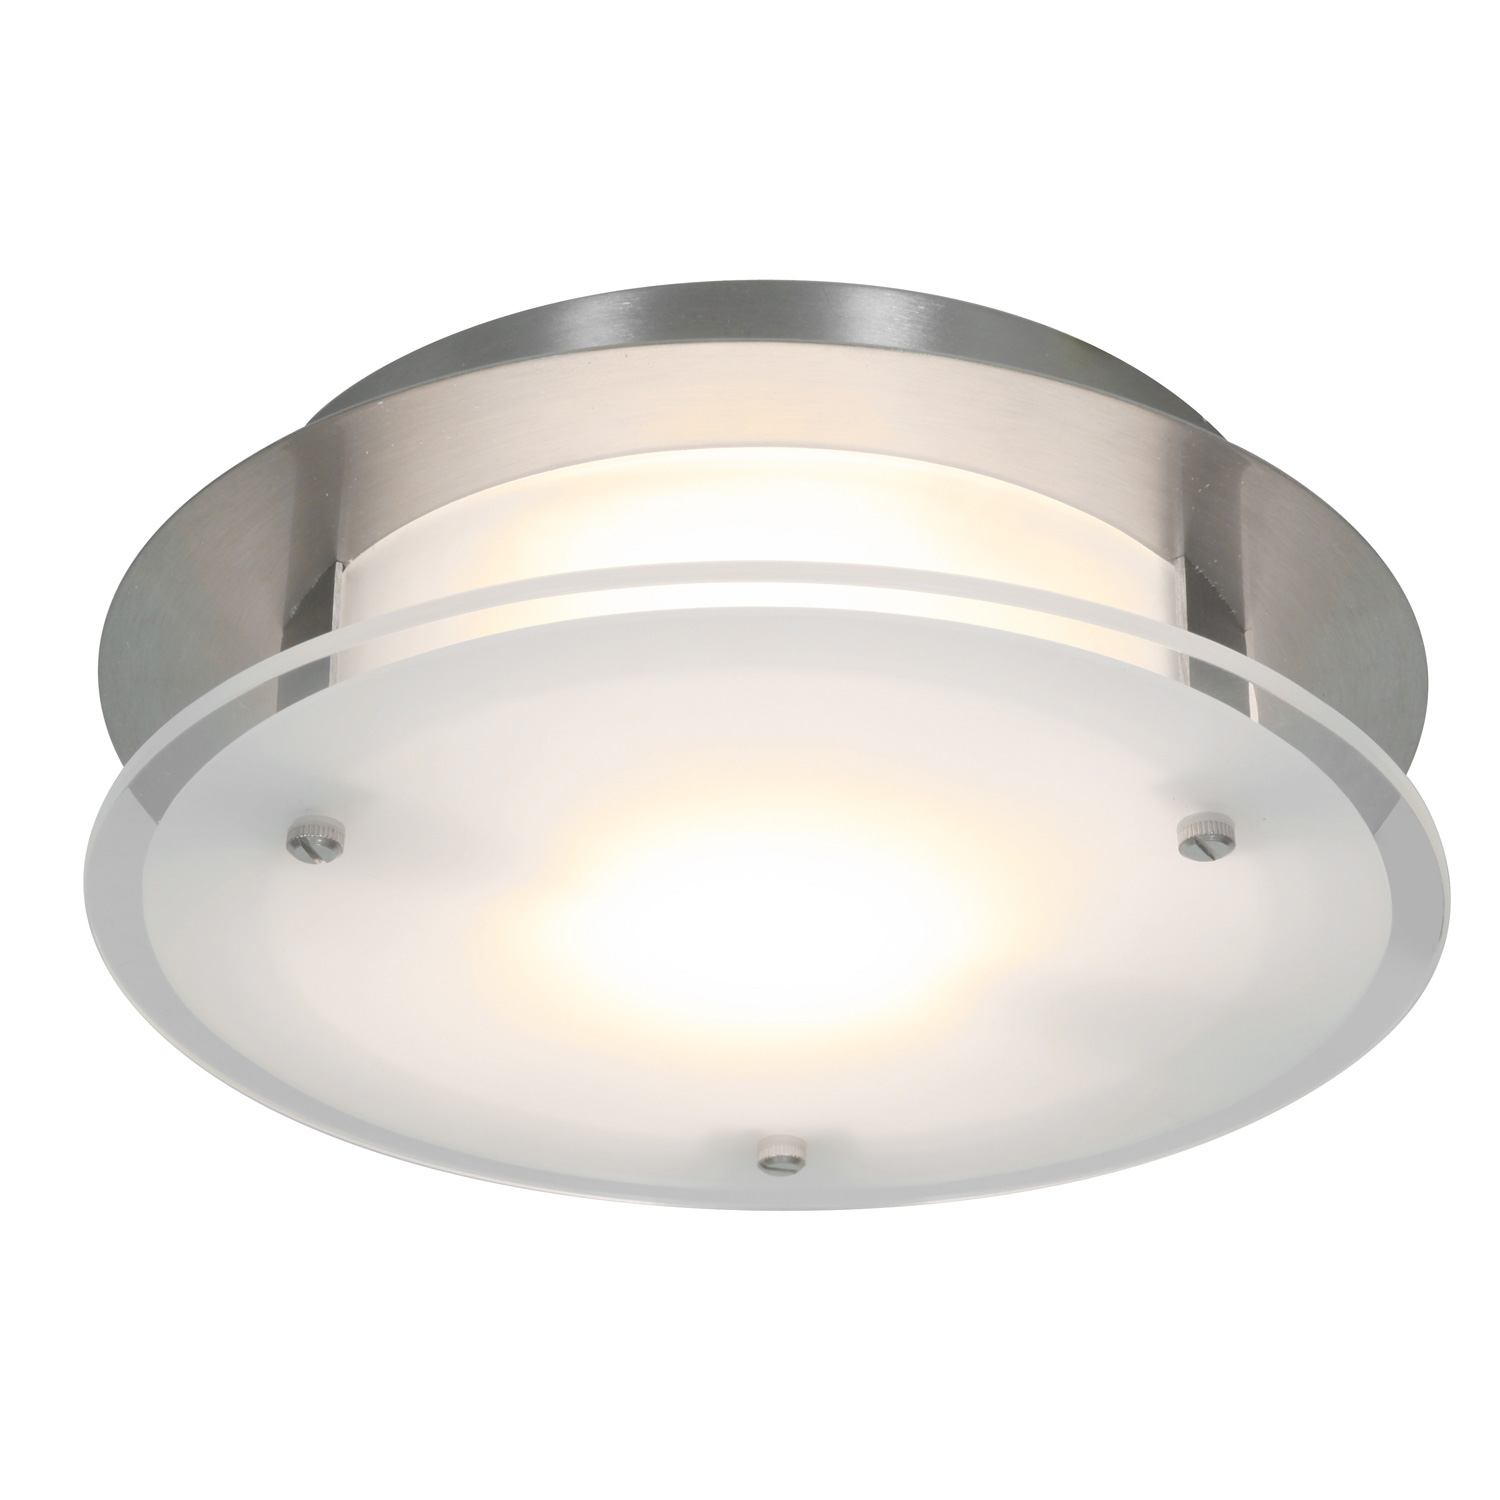 Vision round wall or ceiling light by access 50036 bsfst aloadofball Choice Image